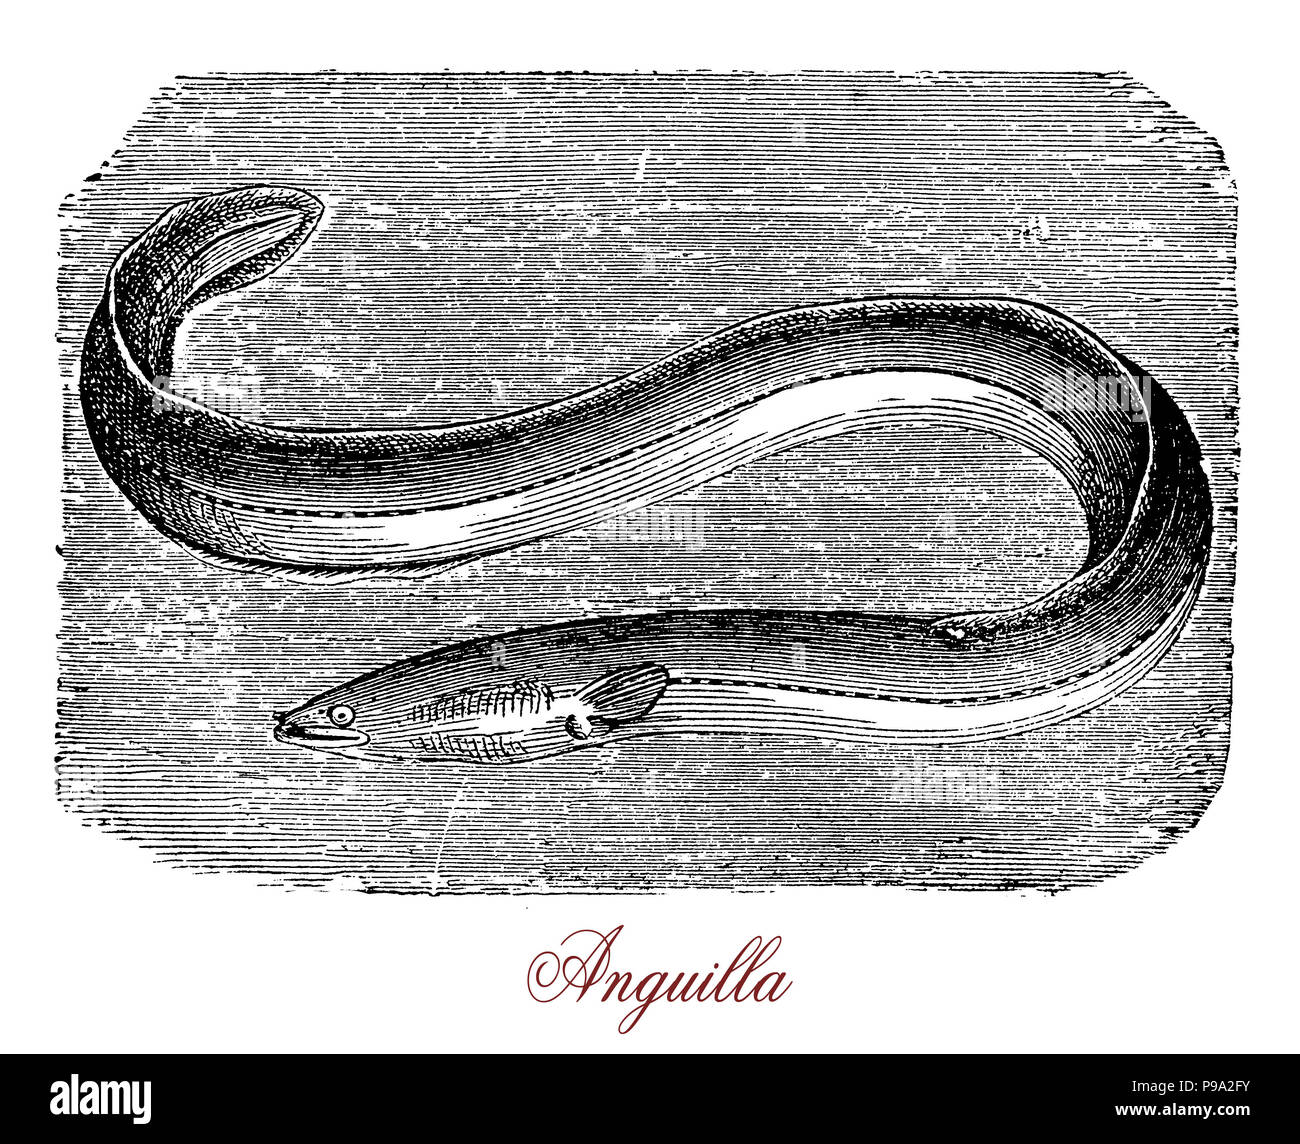 Vintage engraving of freshwater eel or anguilla, fish with snake-like body of  freshwater rivers, lakes, or estuaries. It migrates to ocean to reproduce and it is considered a food fish. - Stock Image